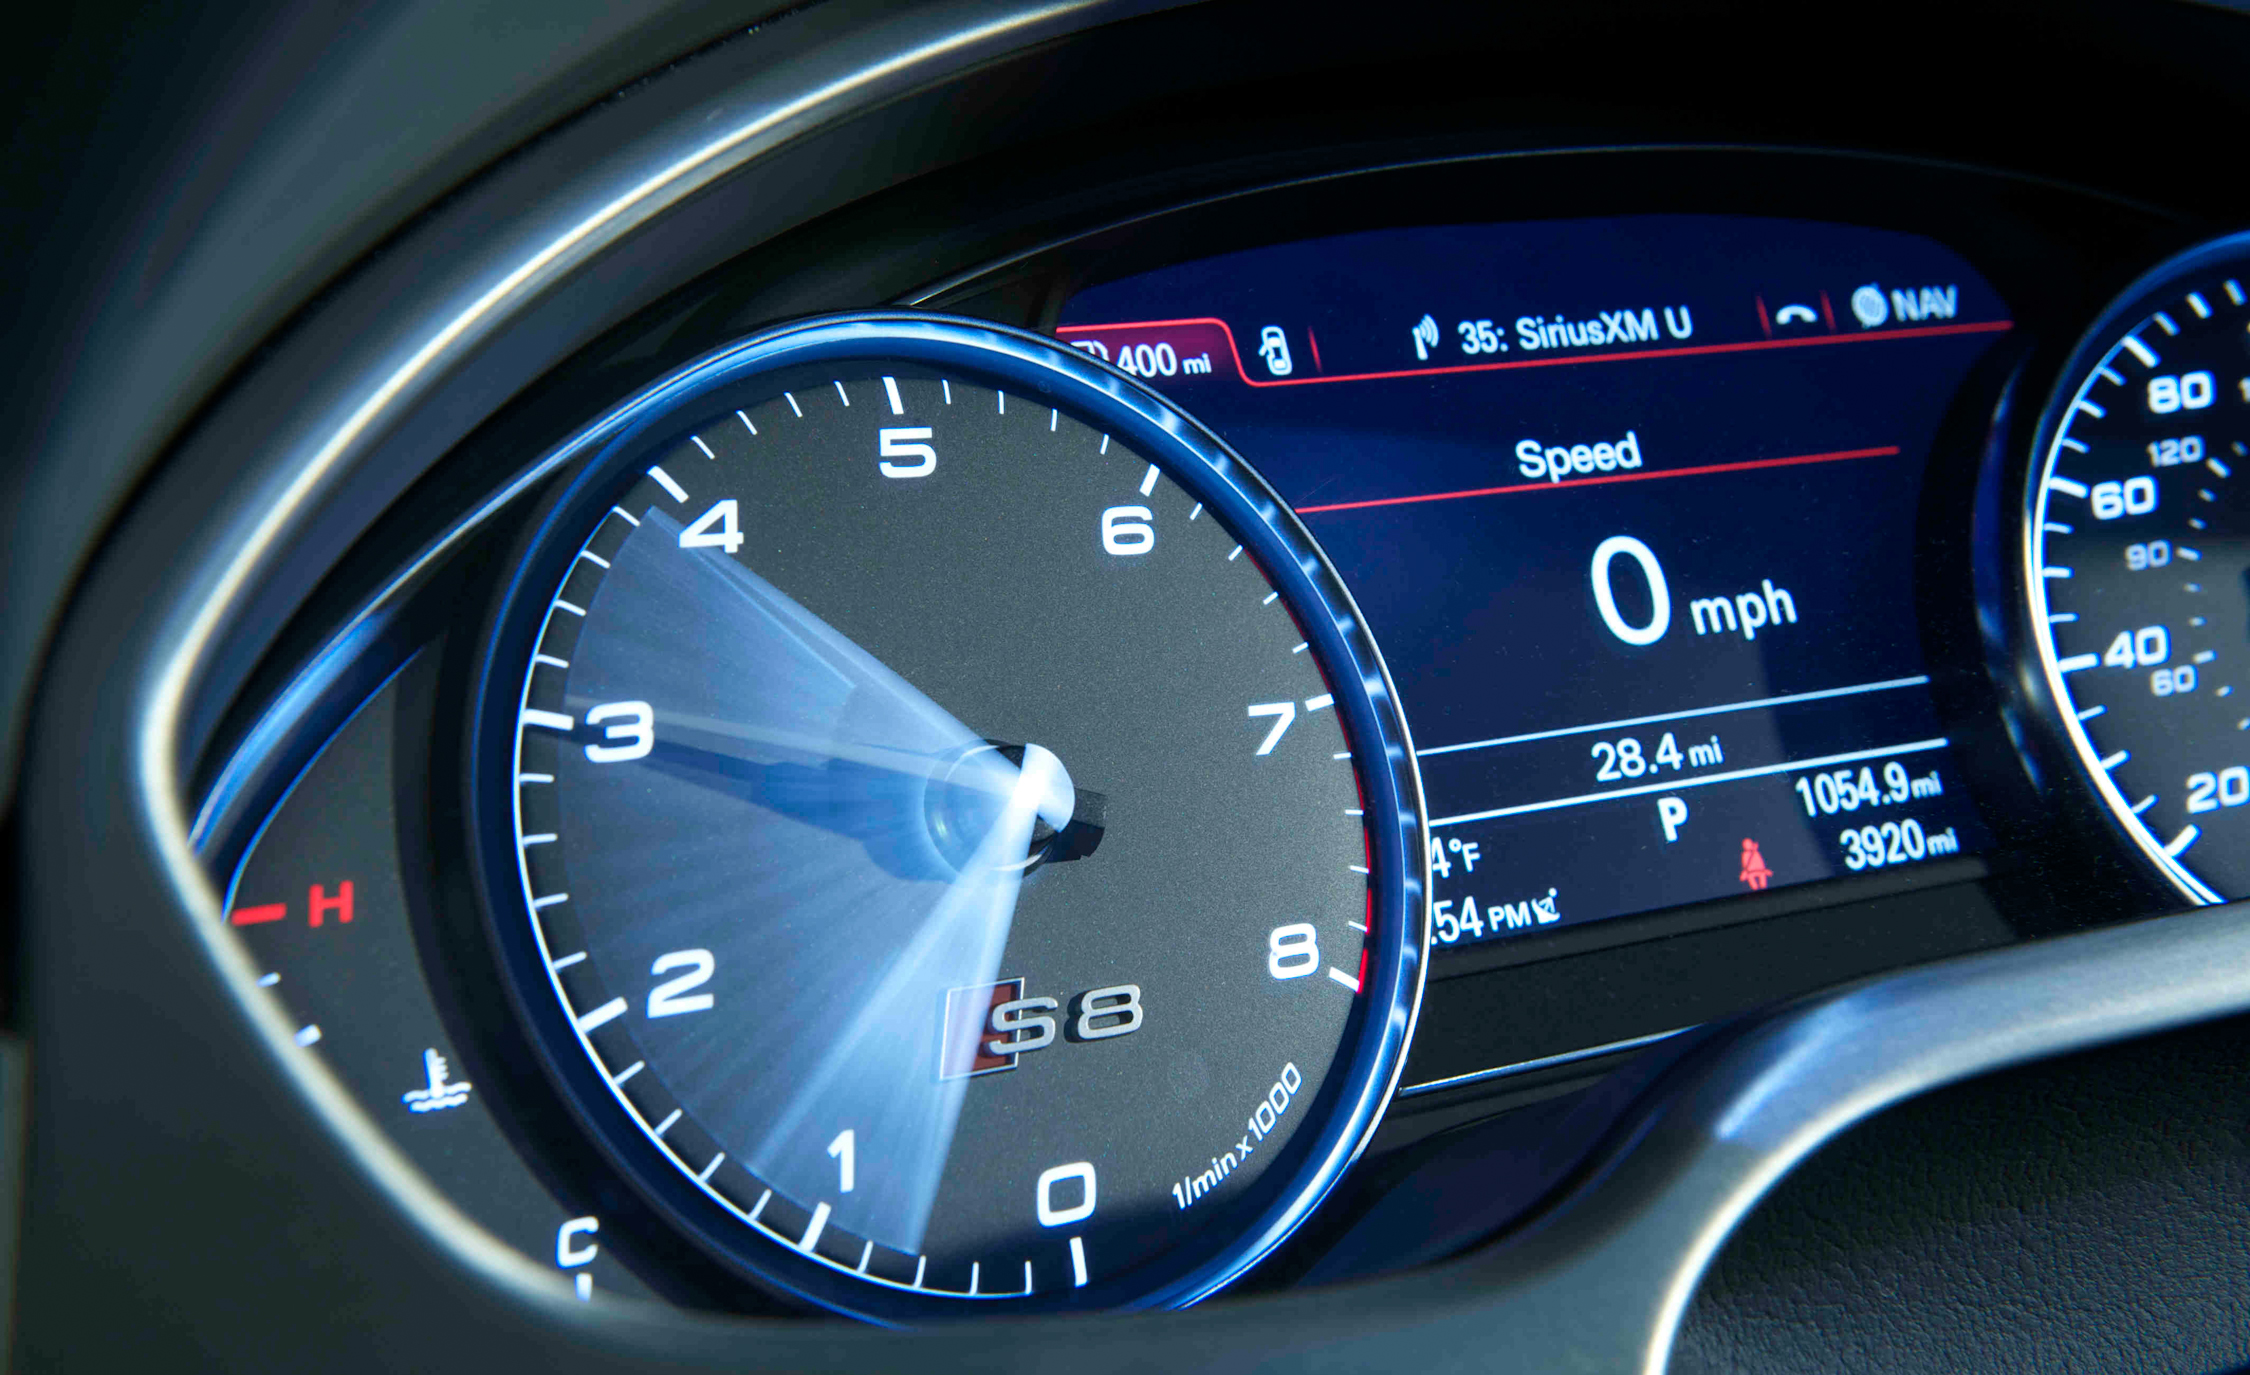 2013 Audi S8 Interior View Instrument Cluster (View 11 of 25)